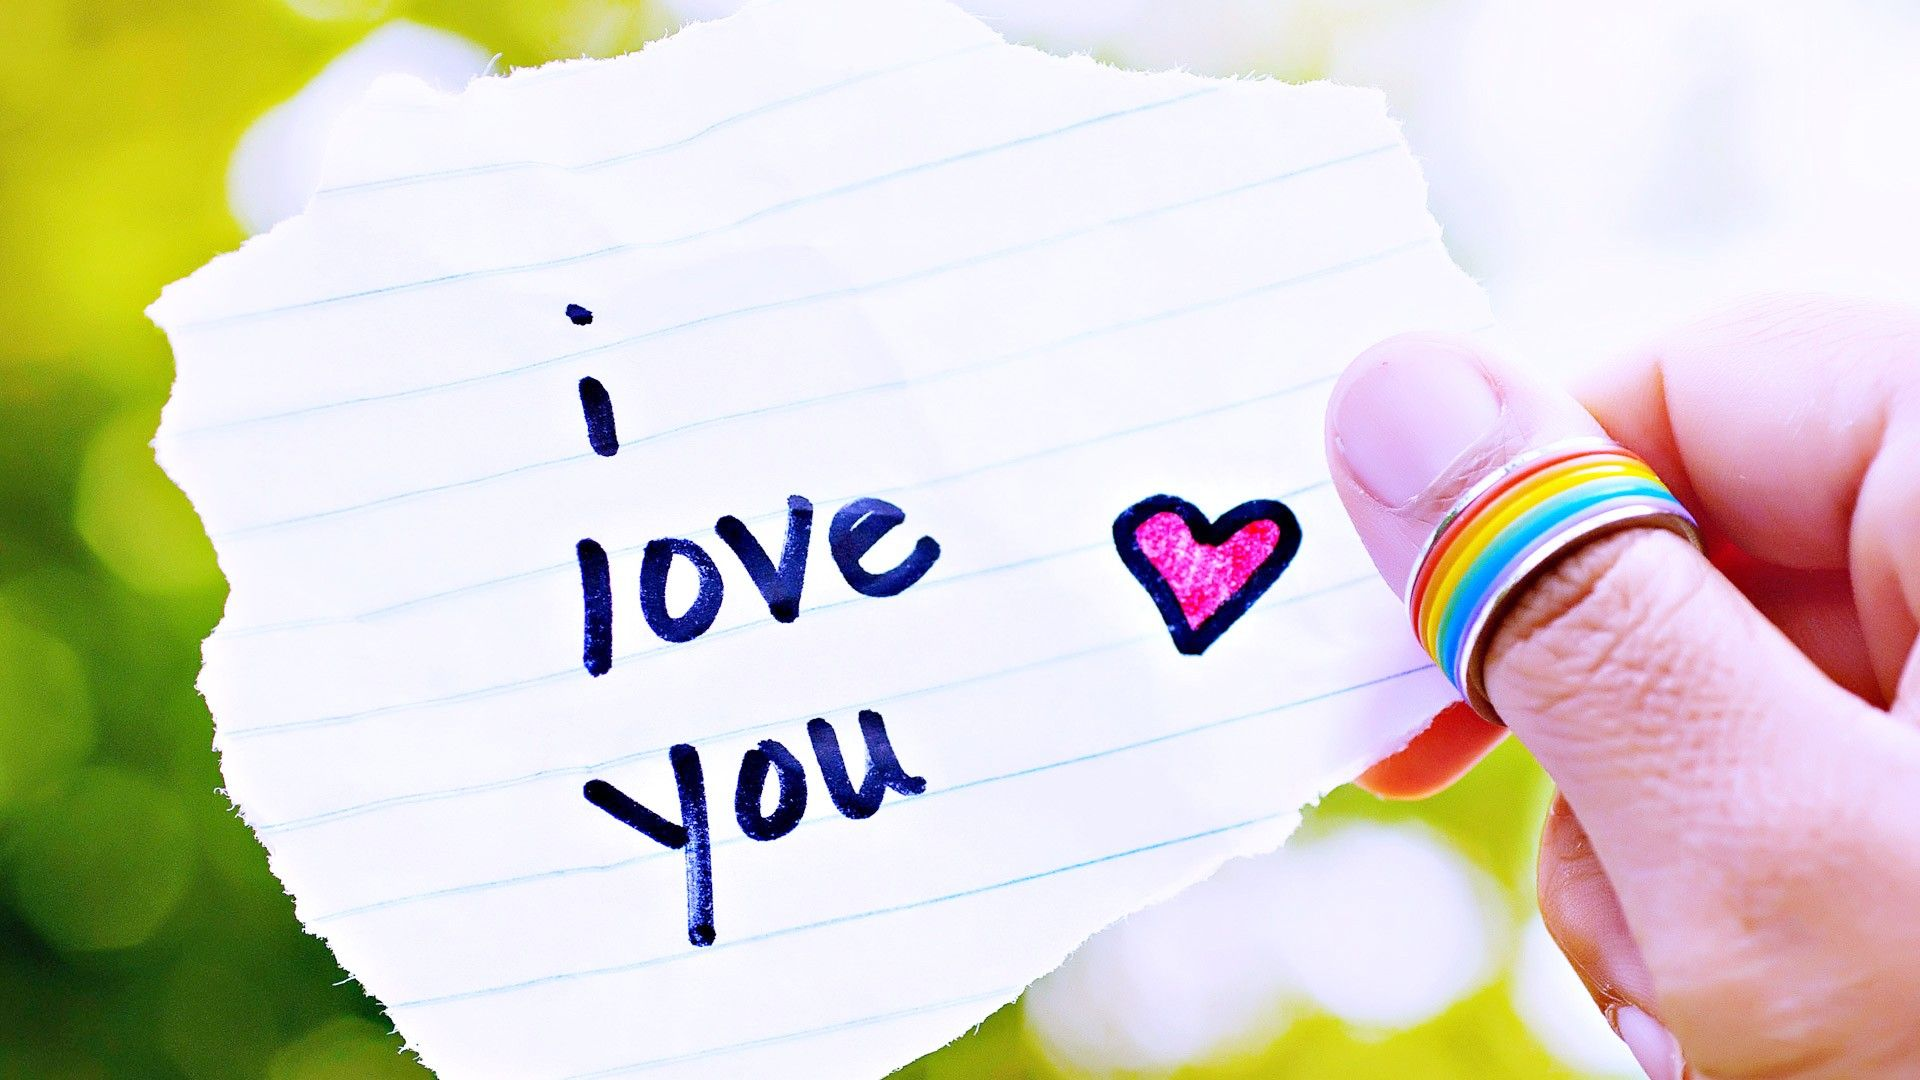 I Love You} Happy Propose Day 2017 Messages